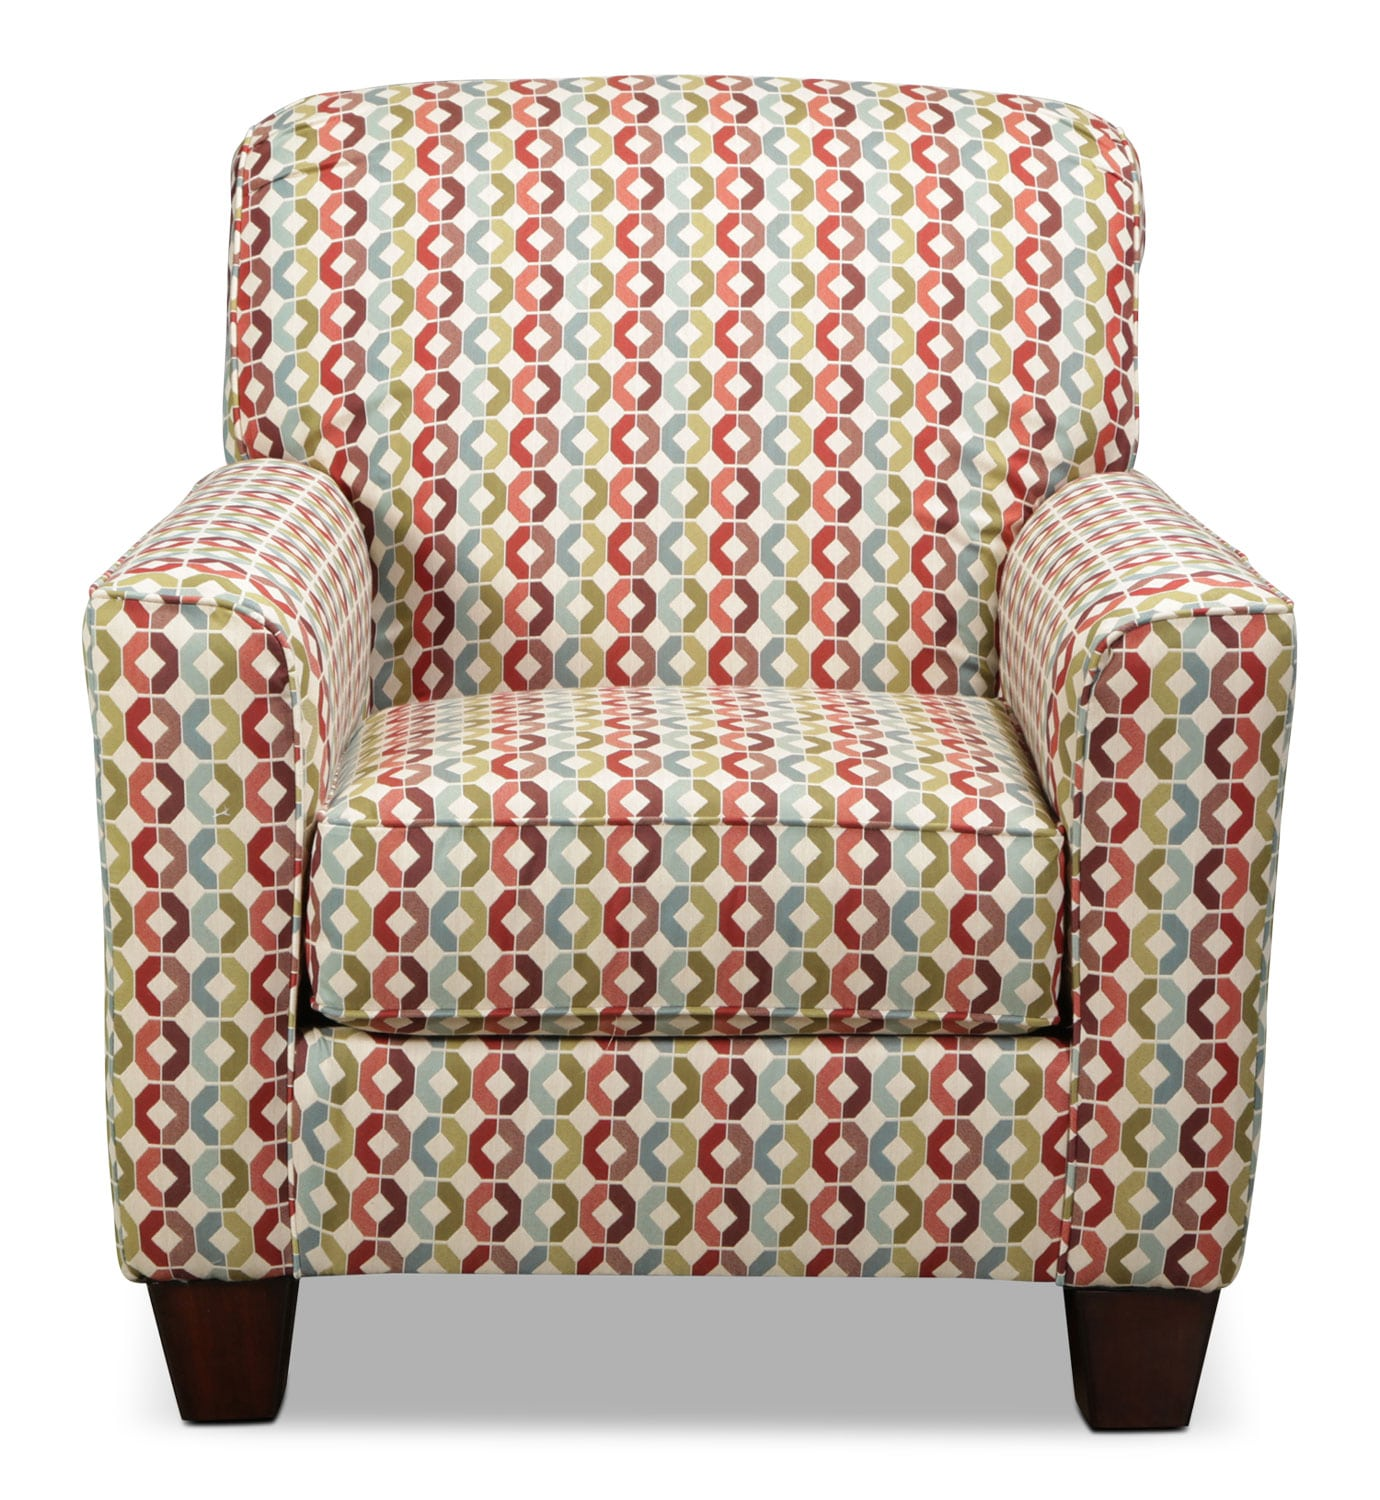 Living Room Furniture - Moroni Accent Chair - Geometric